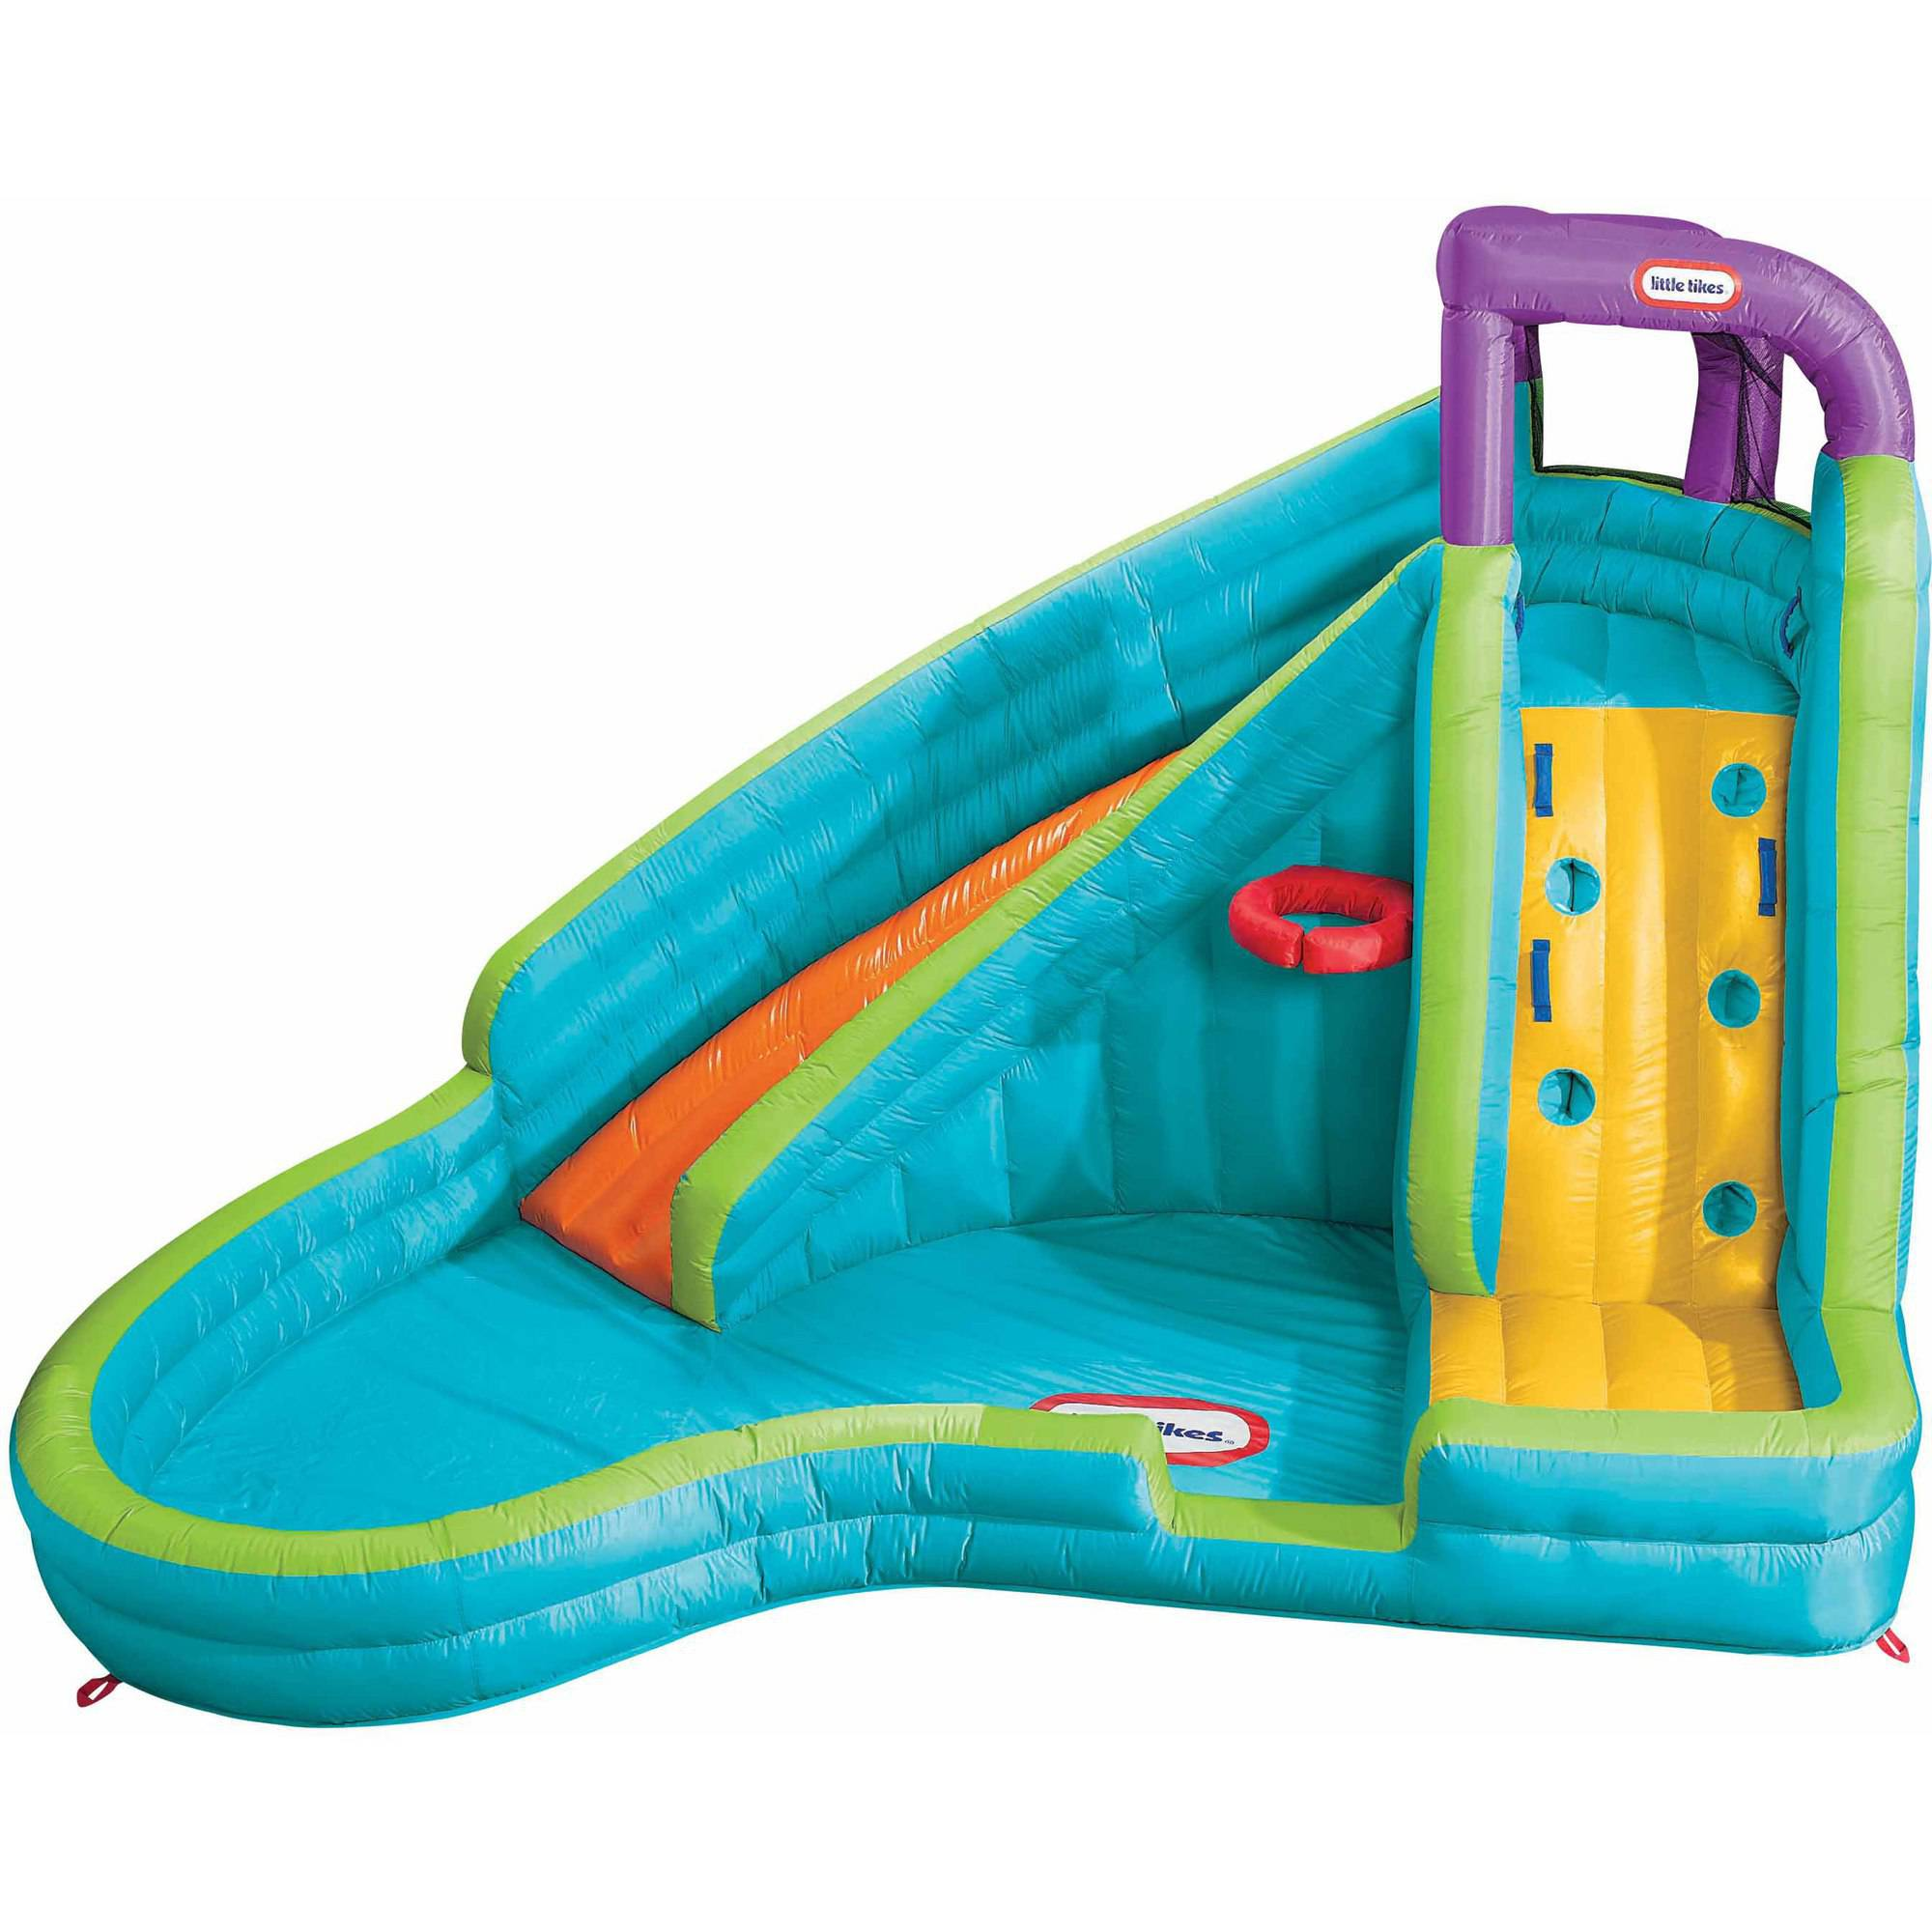 Inflatable Water Slide little tikes slam 'n curve inflatable water slide - walmart